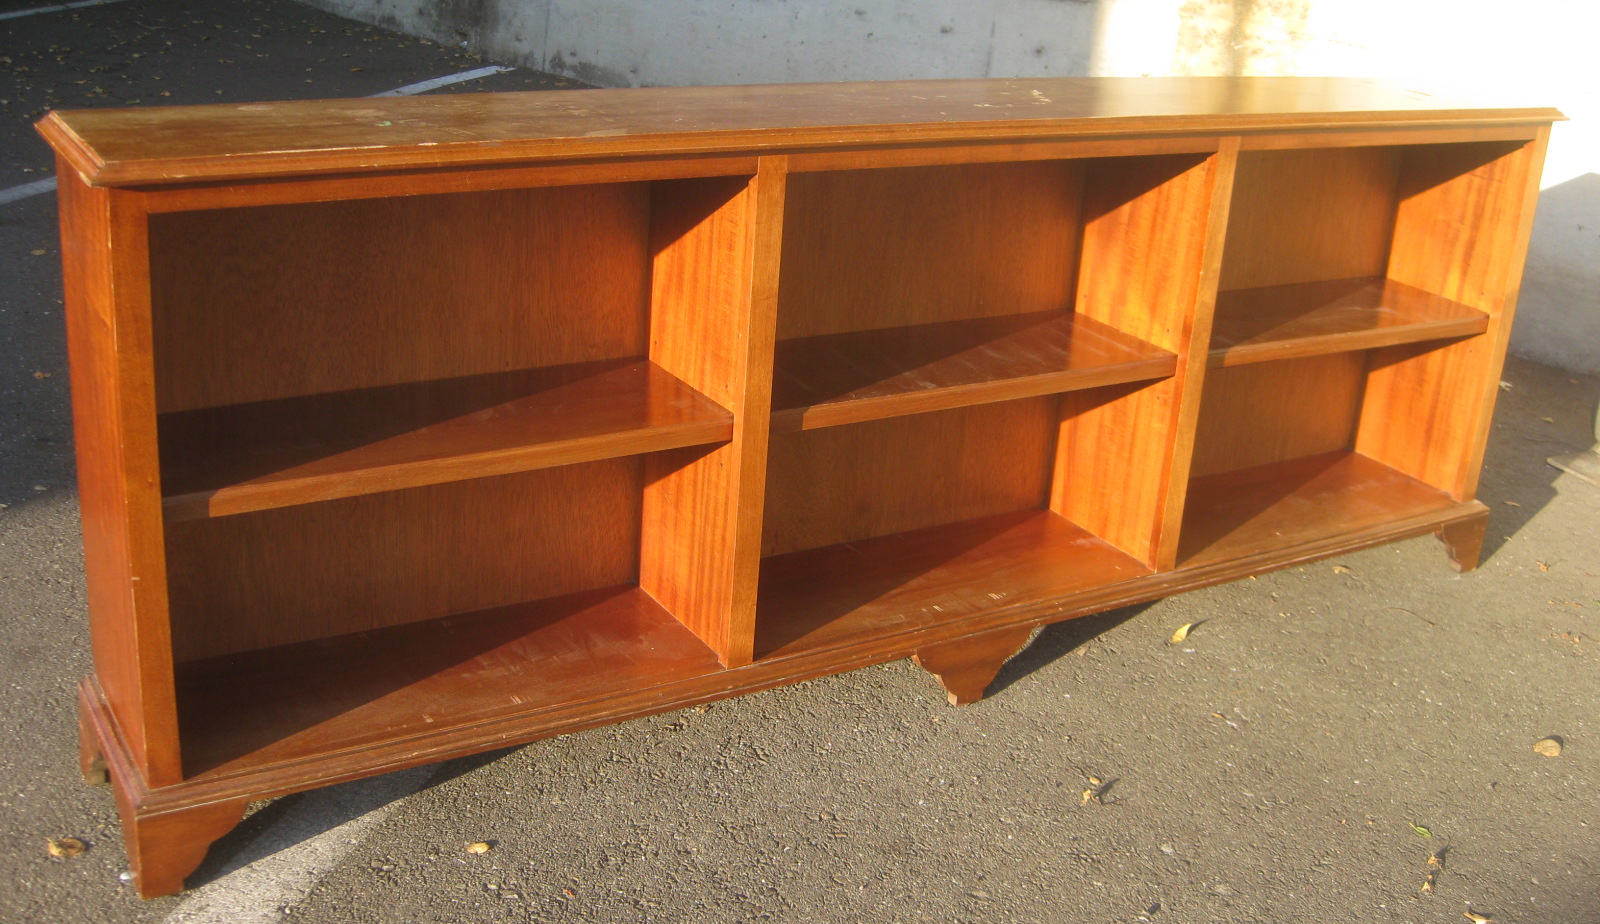 UHURU FURNITURE & COLLECTIBLES: SOLD - Long Low Wooden ...